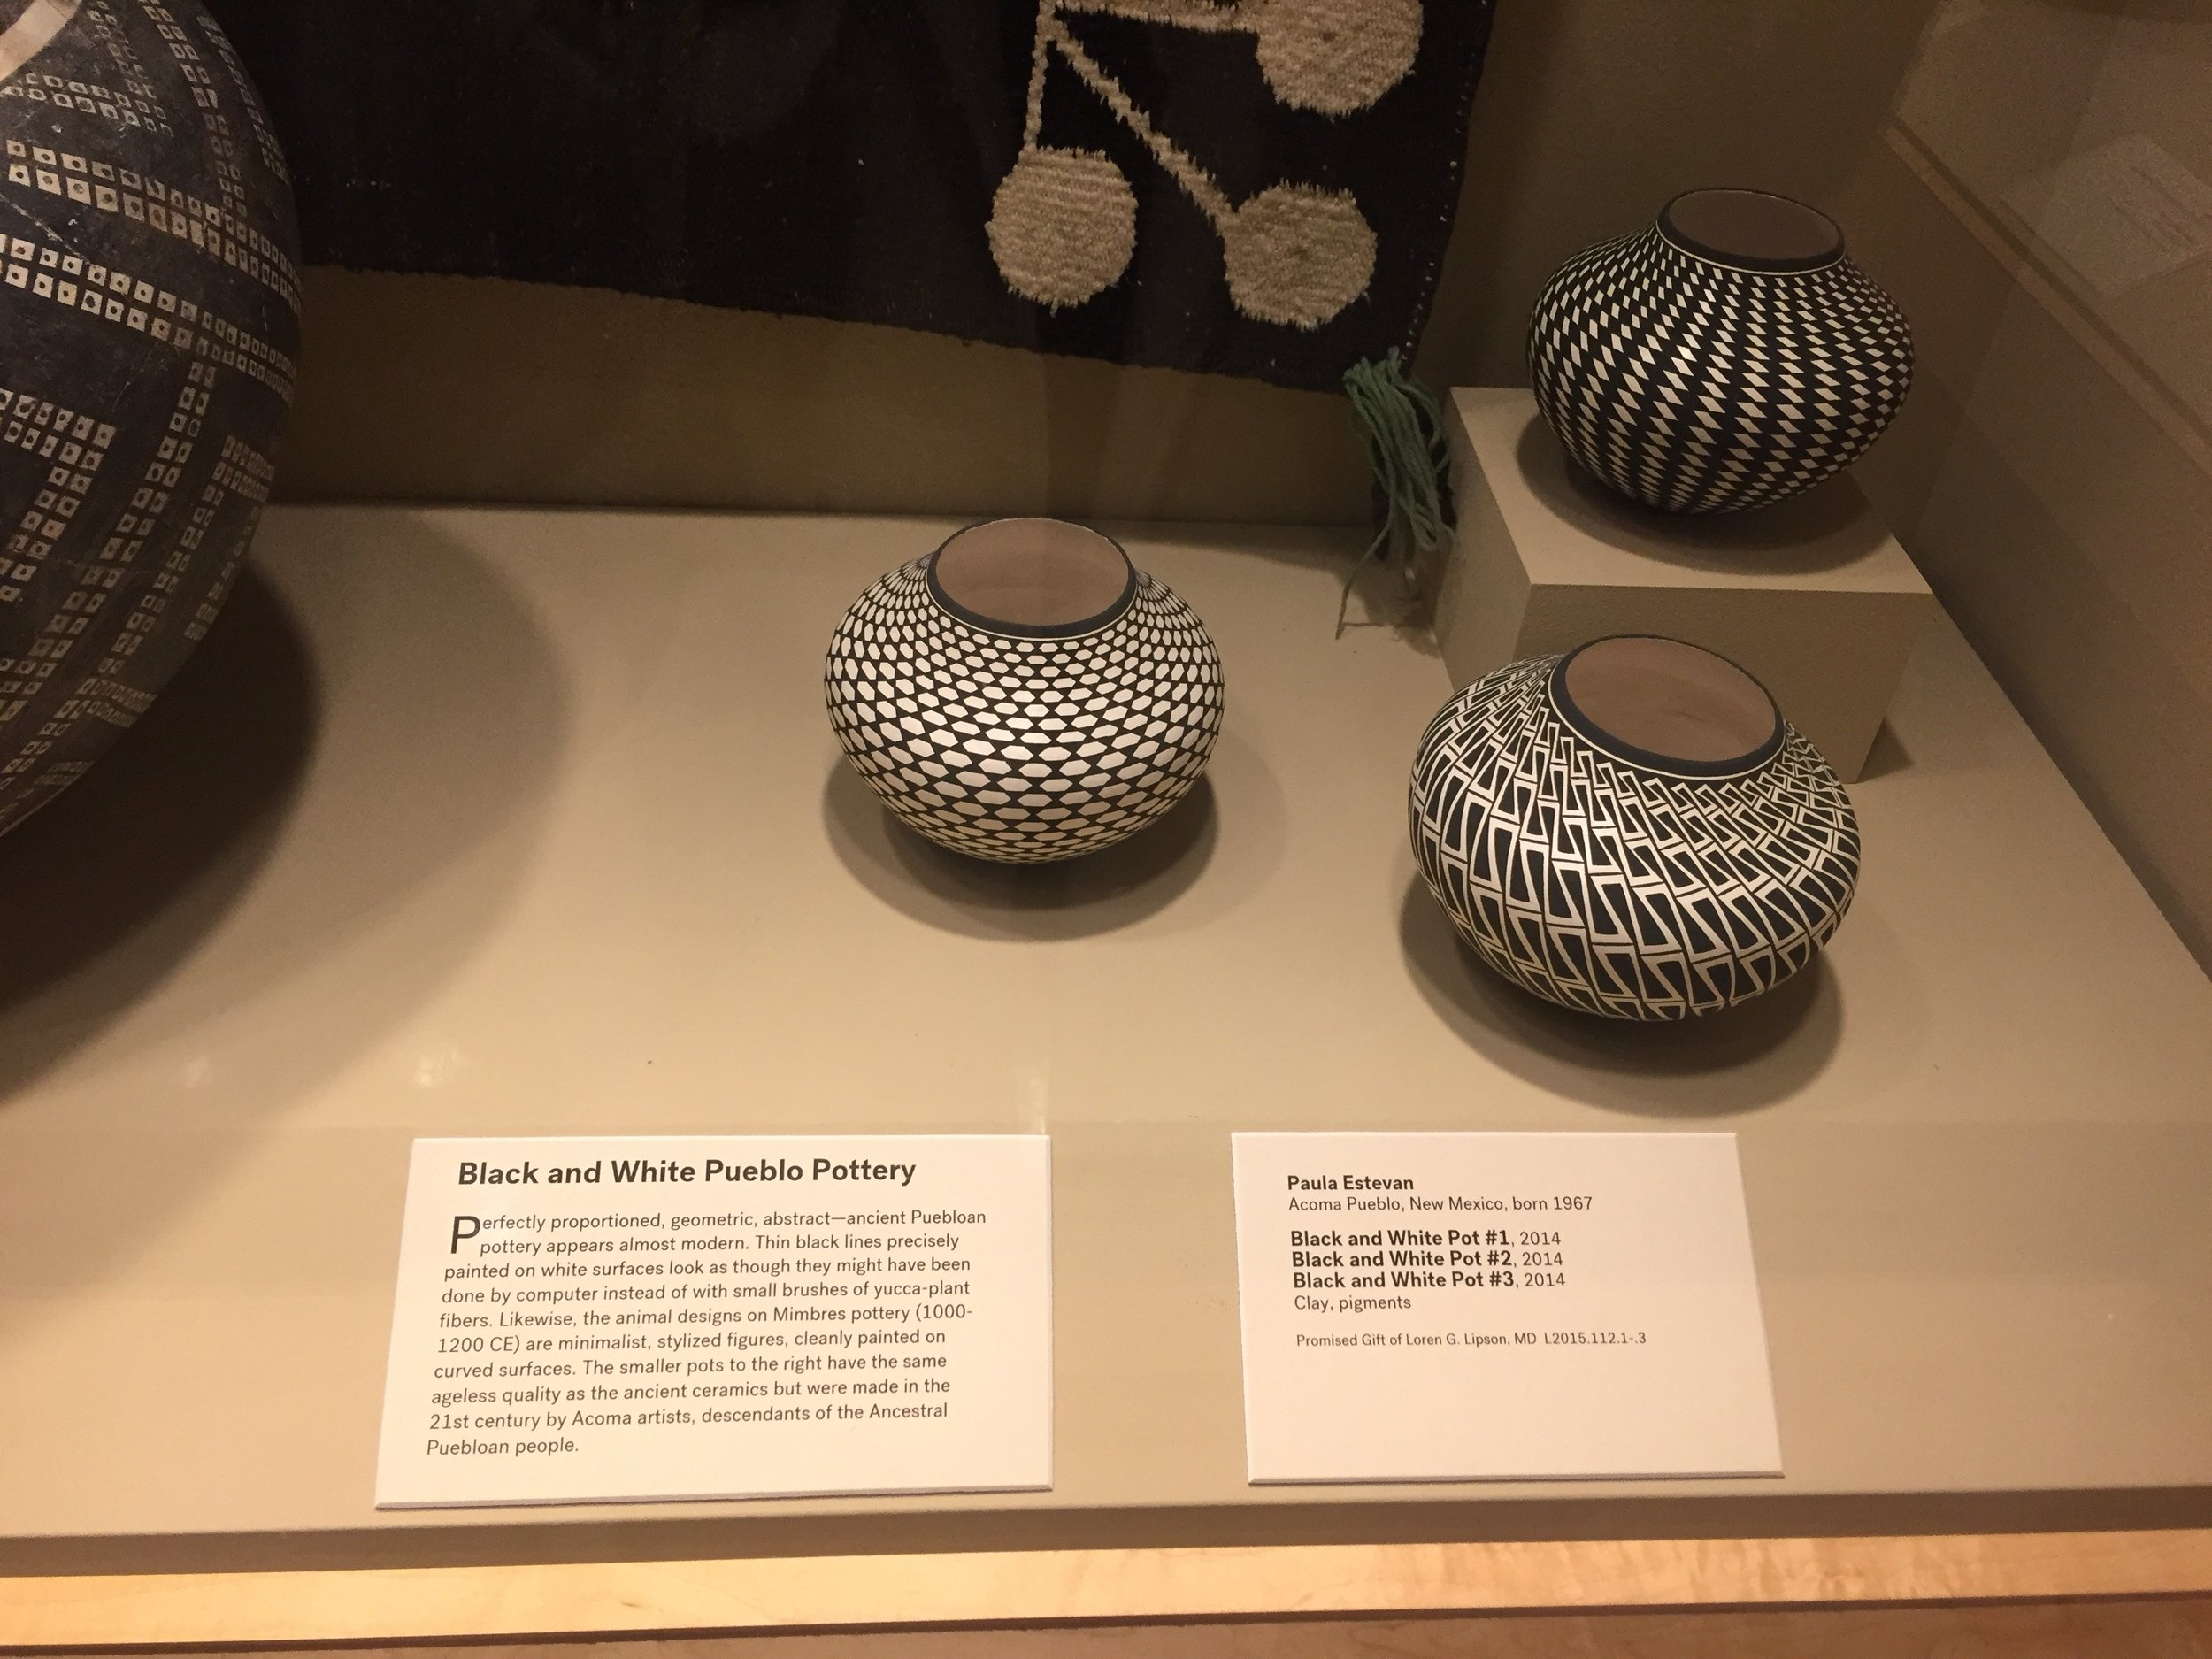 Three black and white pots by artist Paula Estevan were the inspiration for my floral arrangement